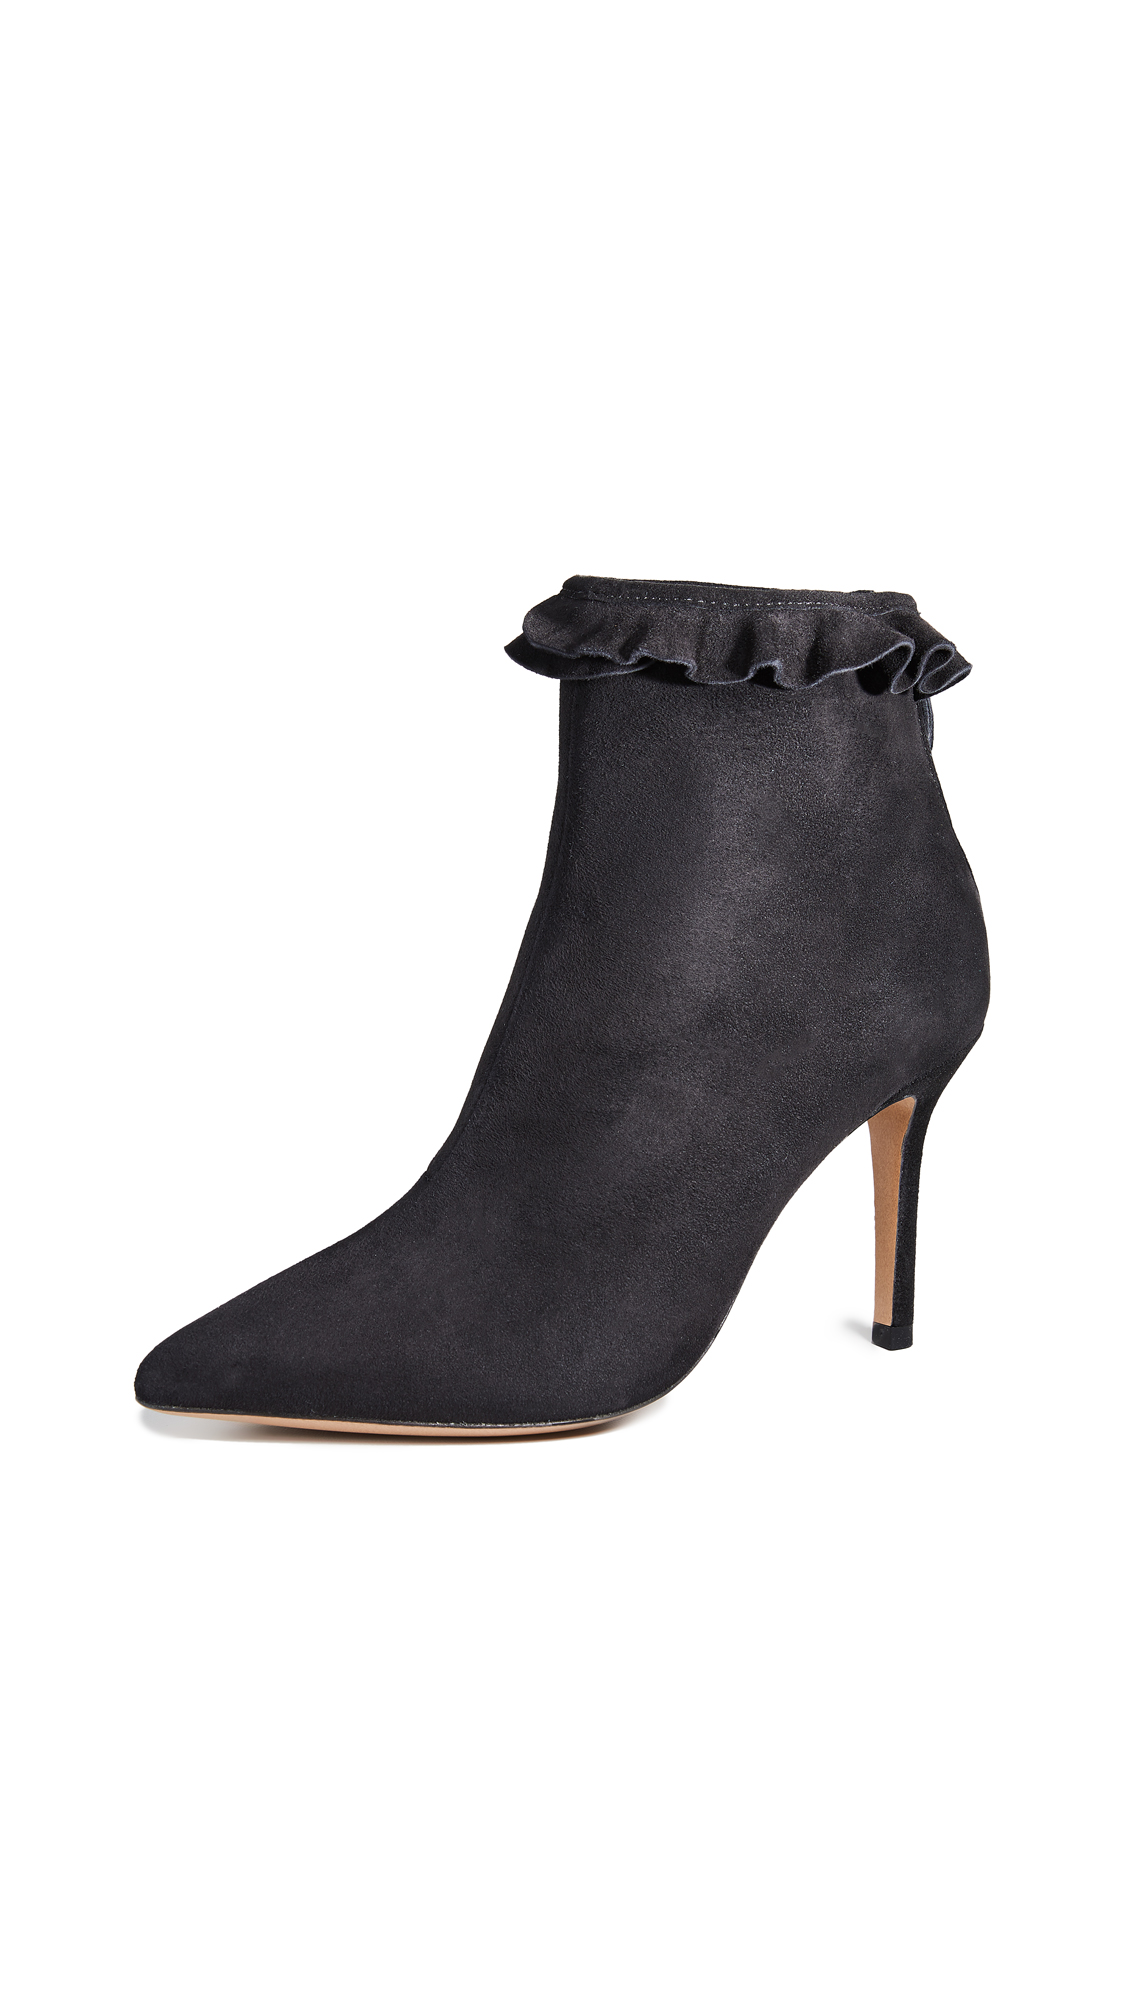 Jerome Dreyfuss Suzy 85 Collerette Booties - Velours Noir